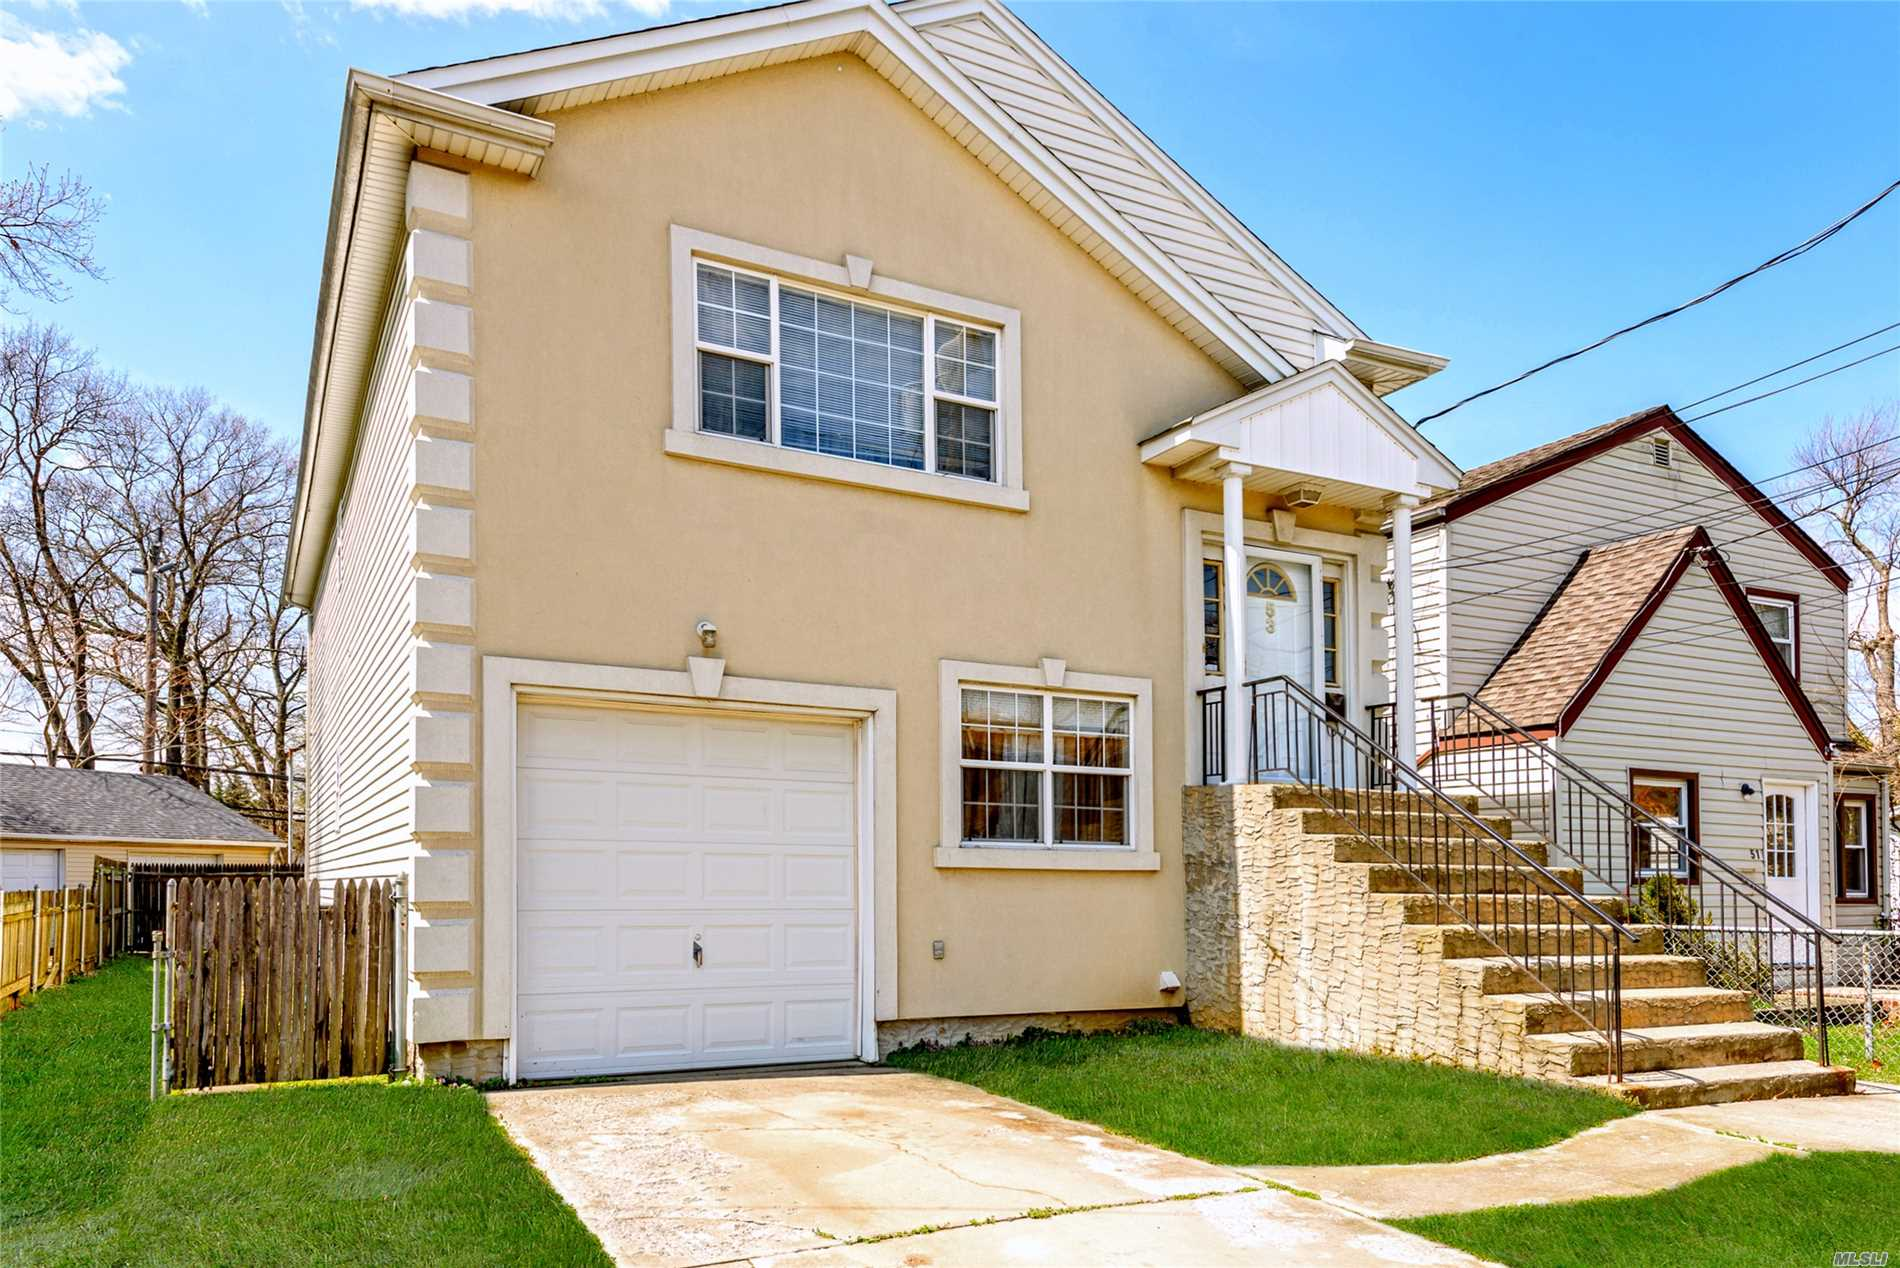 Photo of home for sale at 53 Plainfield Ave, East Rockaway NY